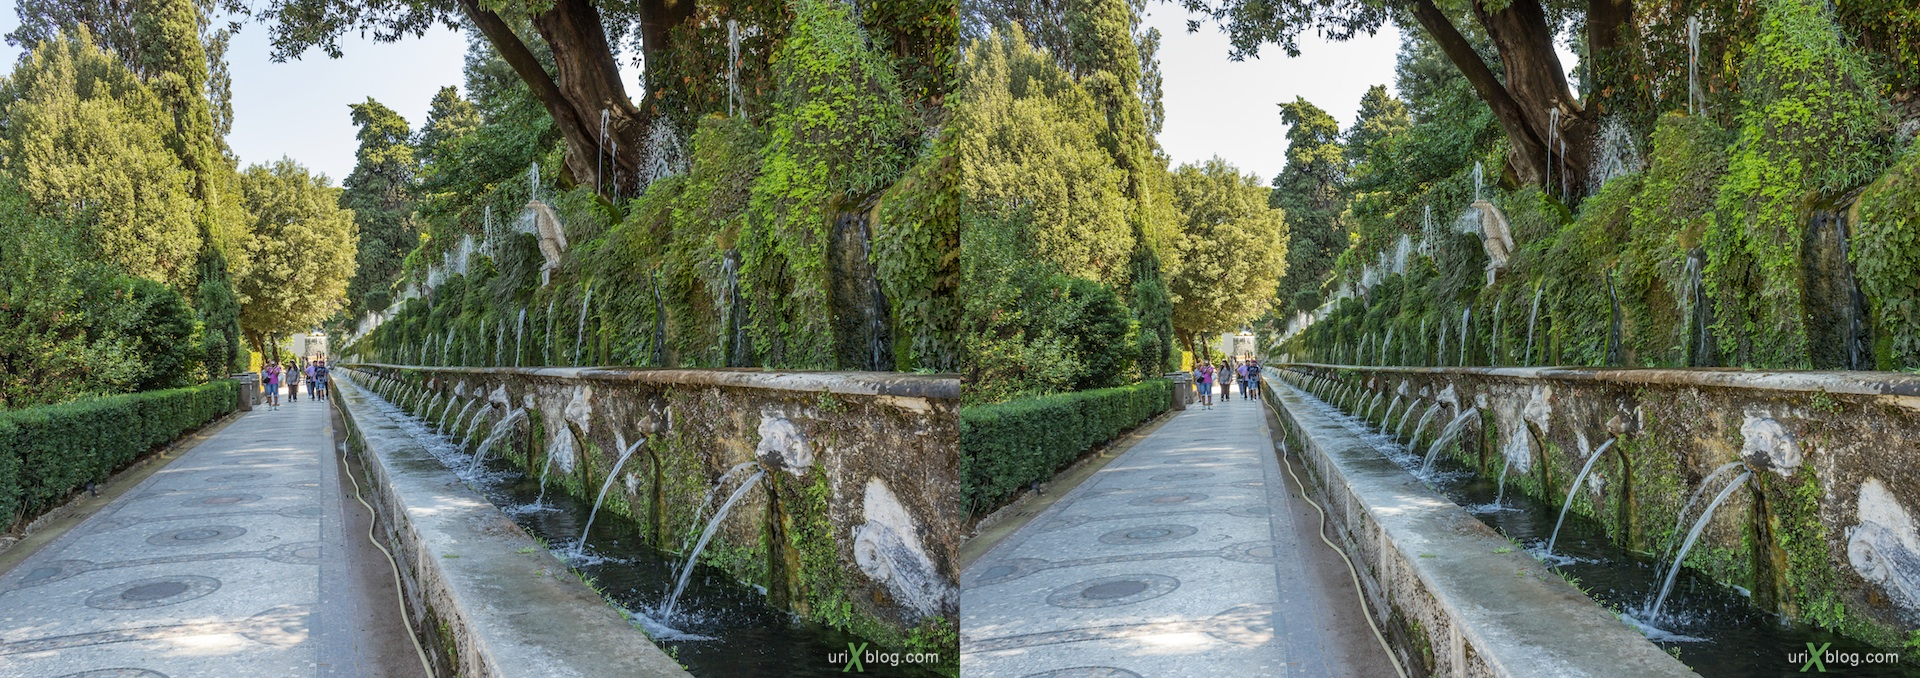 2012, Avenue of the Hundred Fountains, Viale delle Cento Fontane, villa D'Este, Italy, Tivoli, Rome, 3D, stereo pair, cross-eyed, crossview, cross view stereo pair